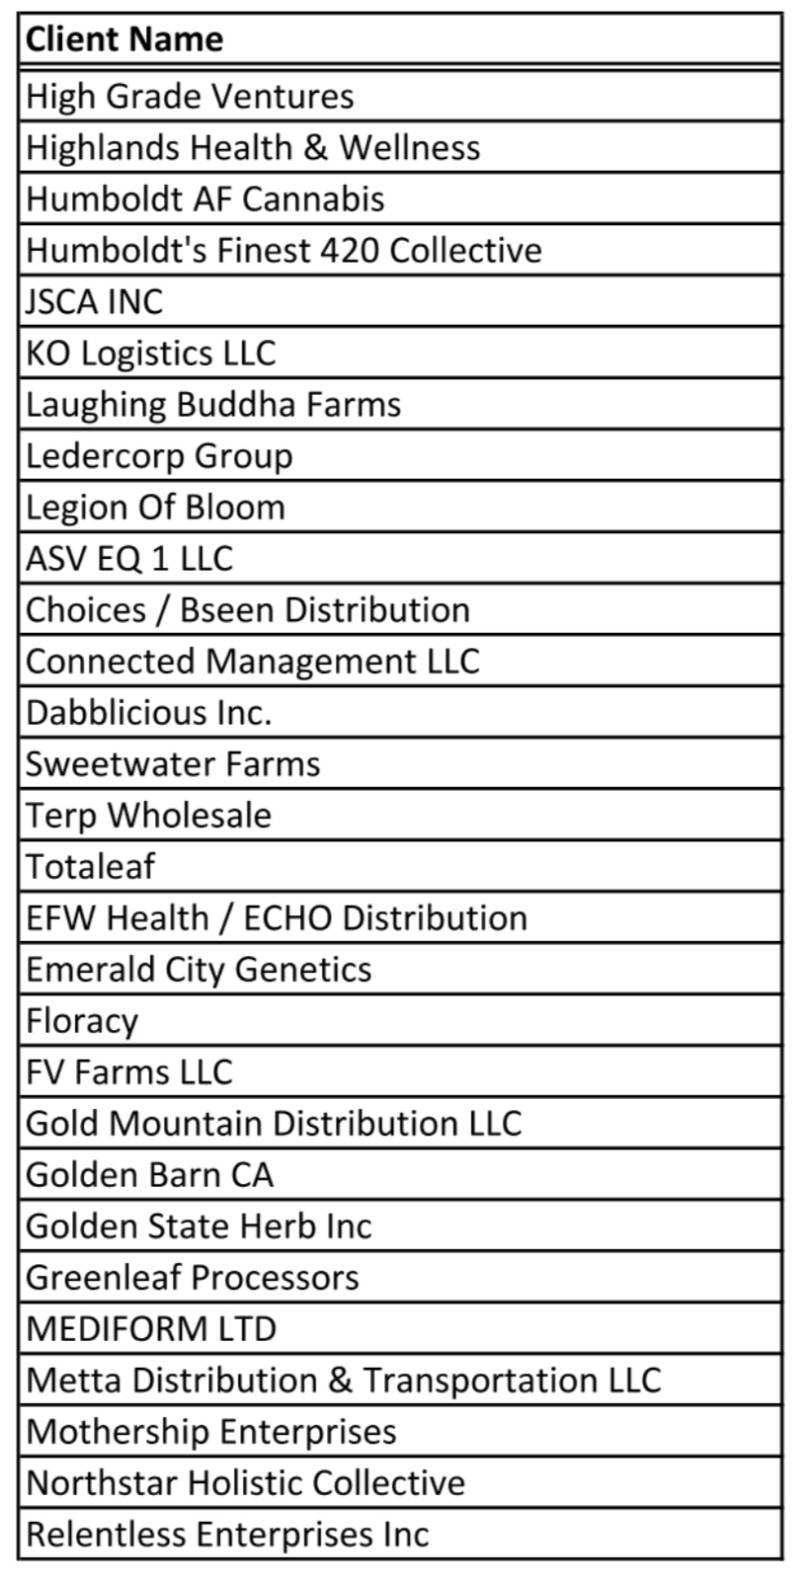 29 companies have been named in the recall.